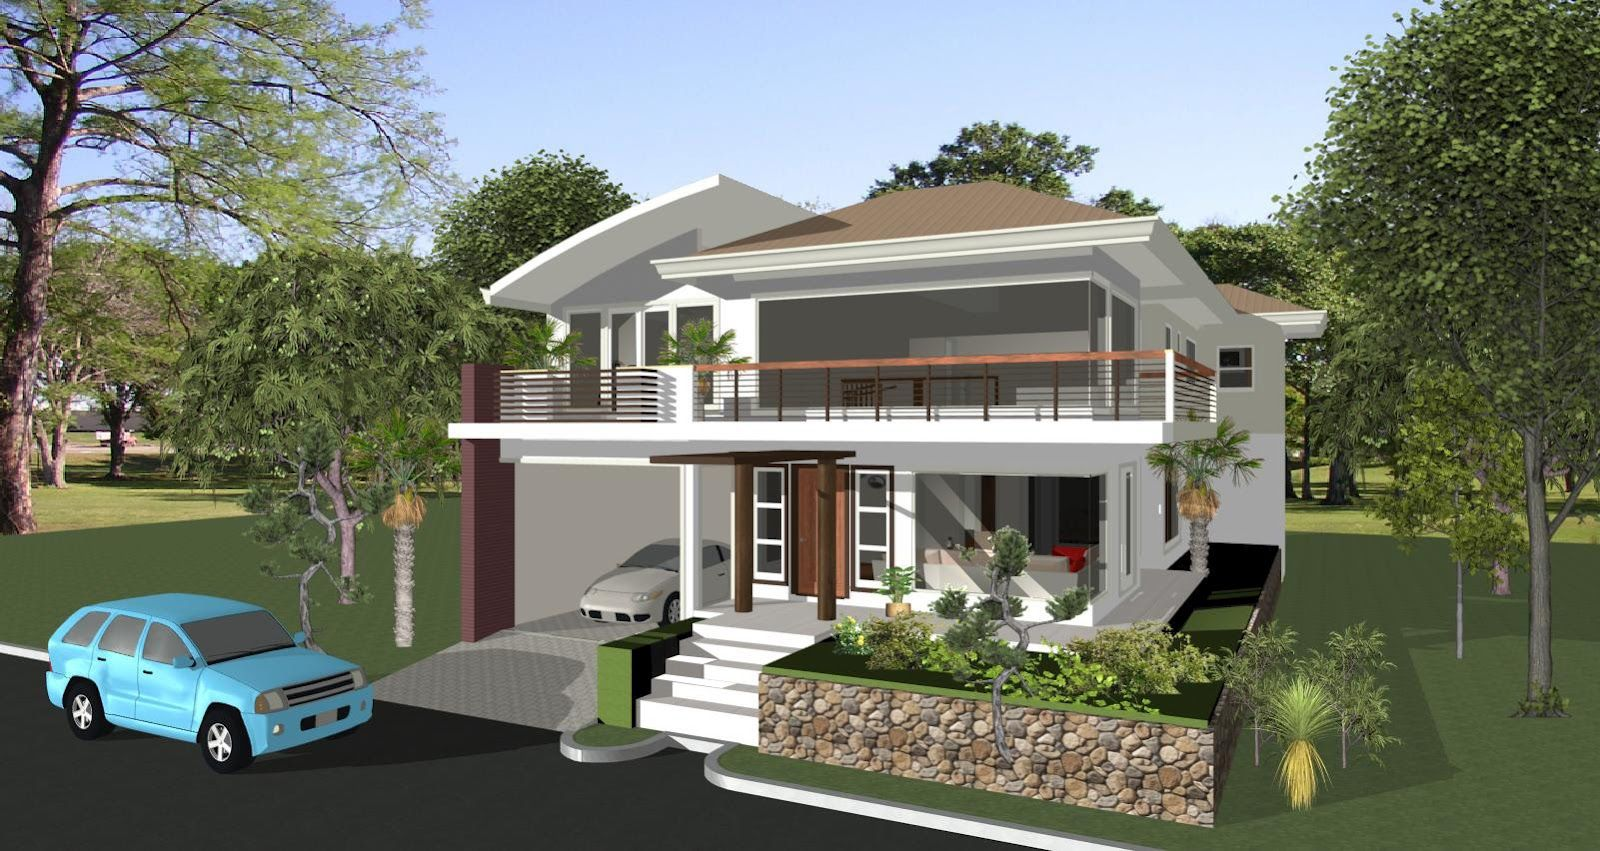 Dream home designs erecre group realty design and Dream homes plans